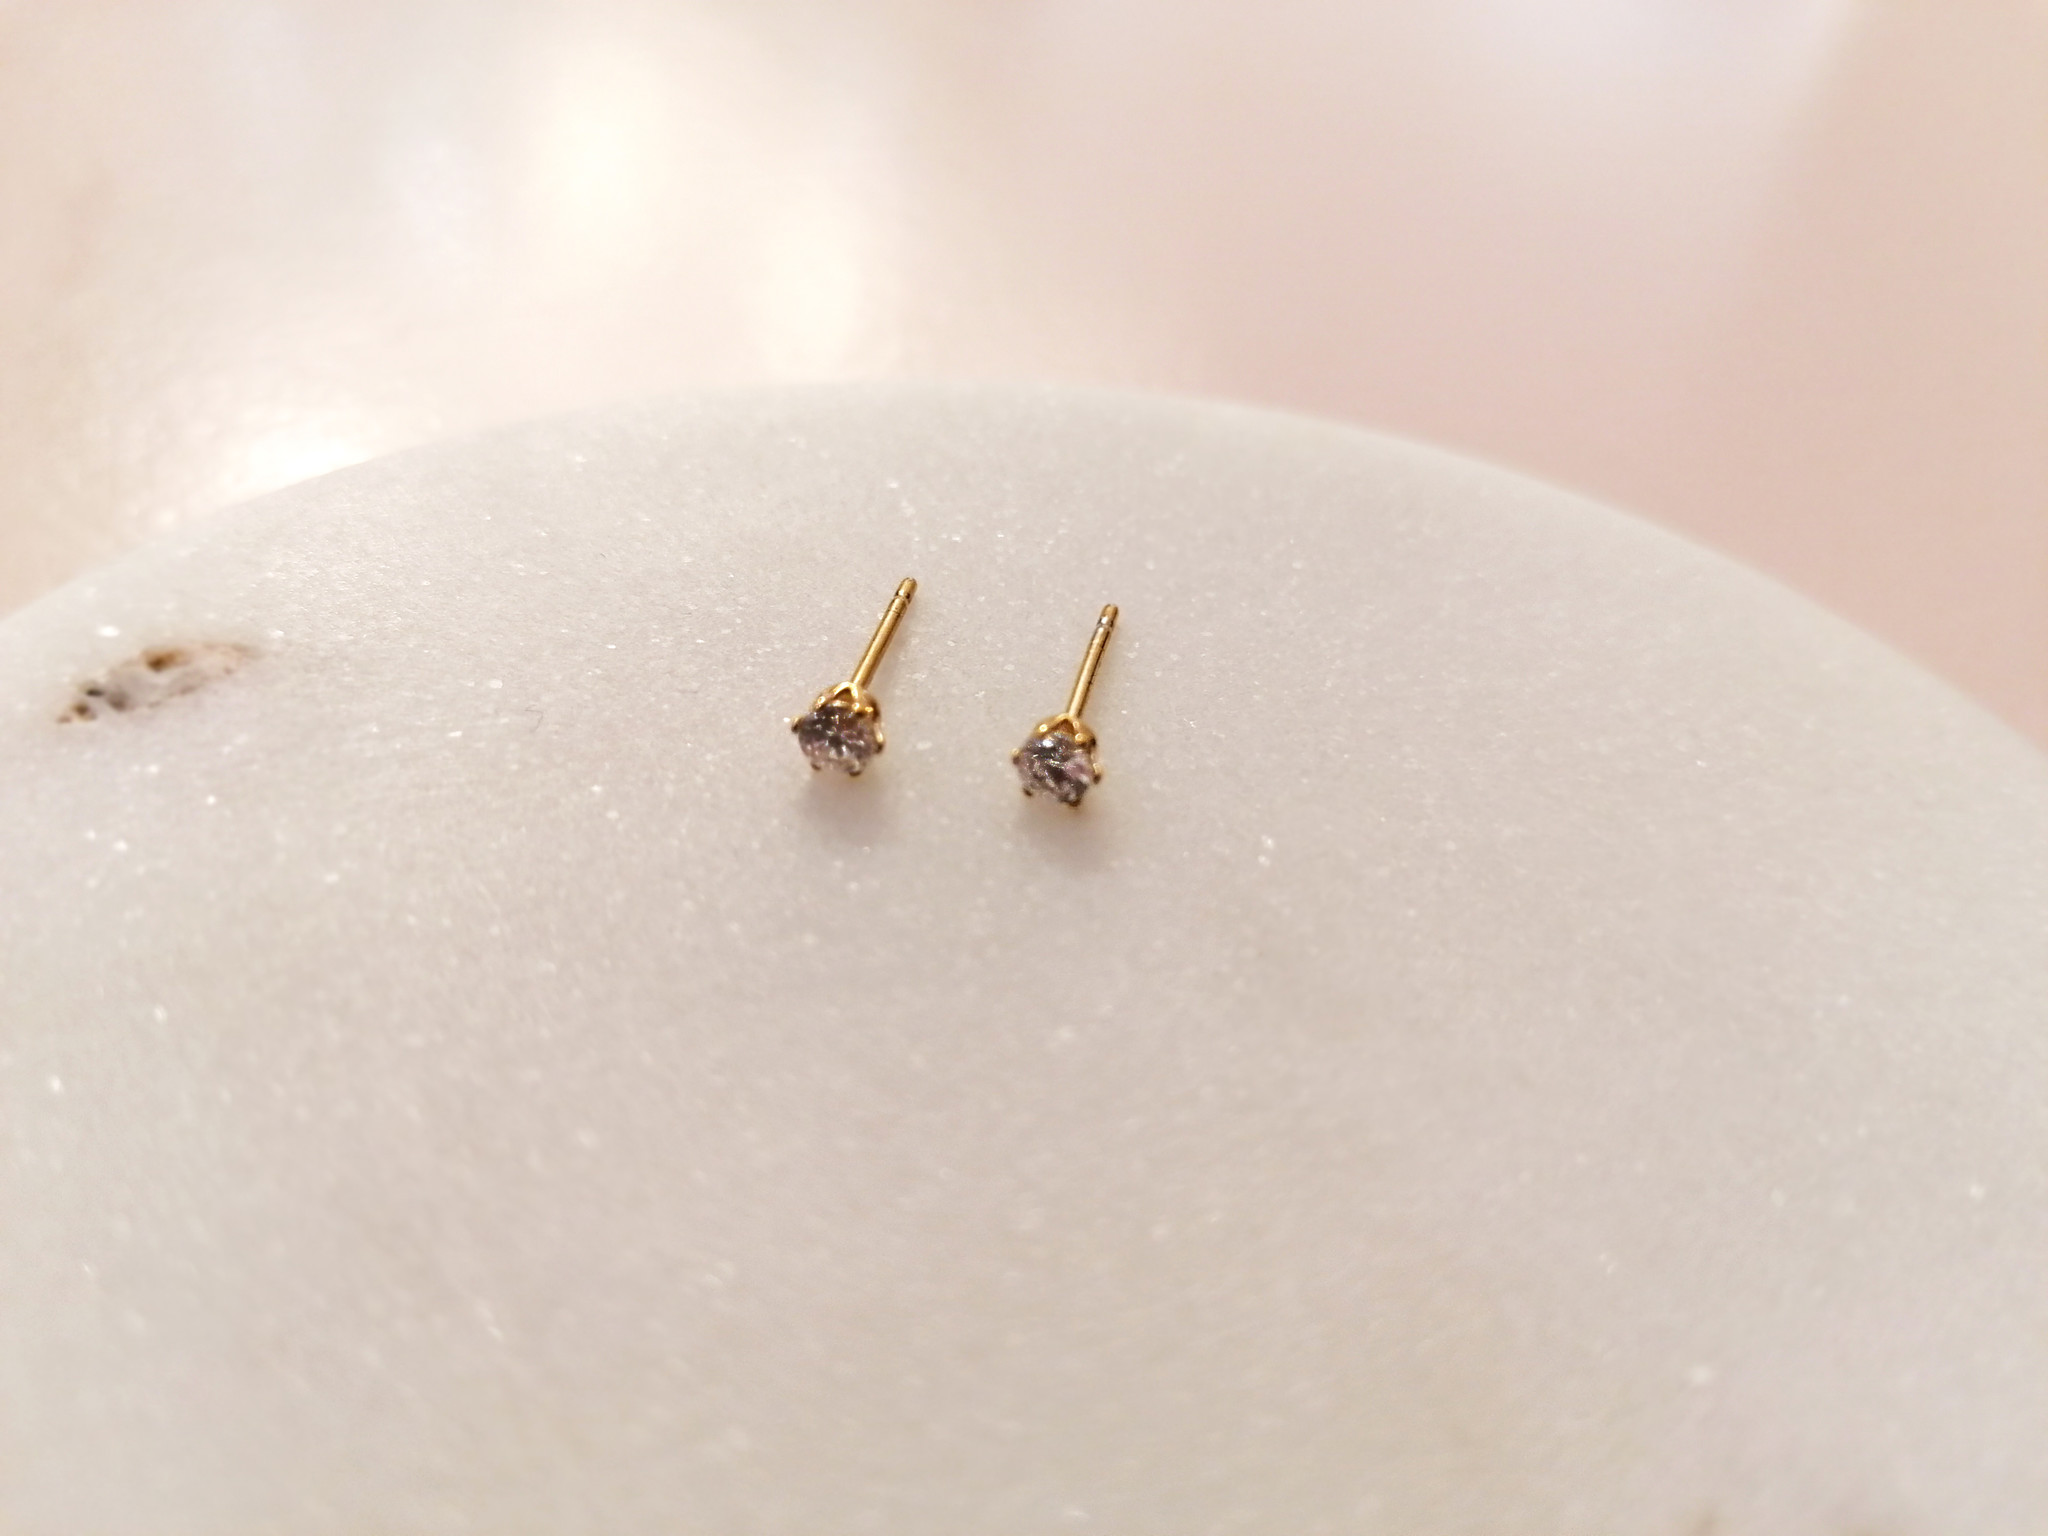 Golden stud earrings with stone - 925 sterling silver-2